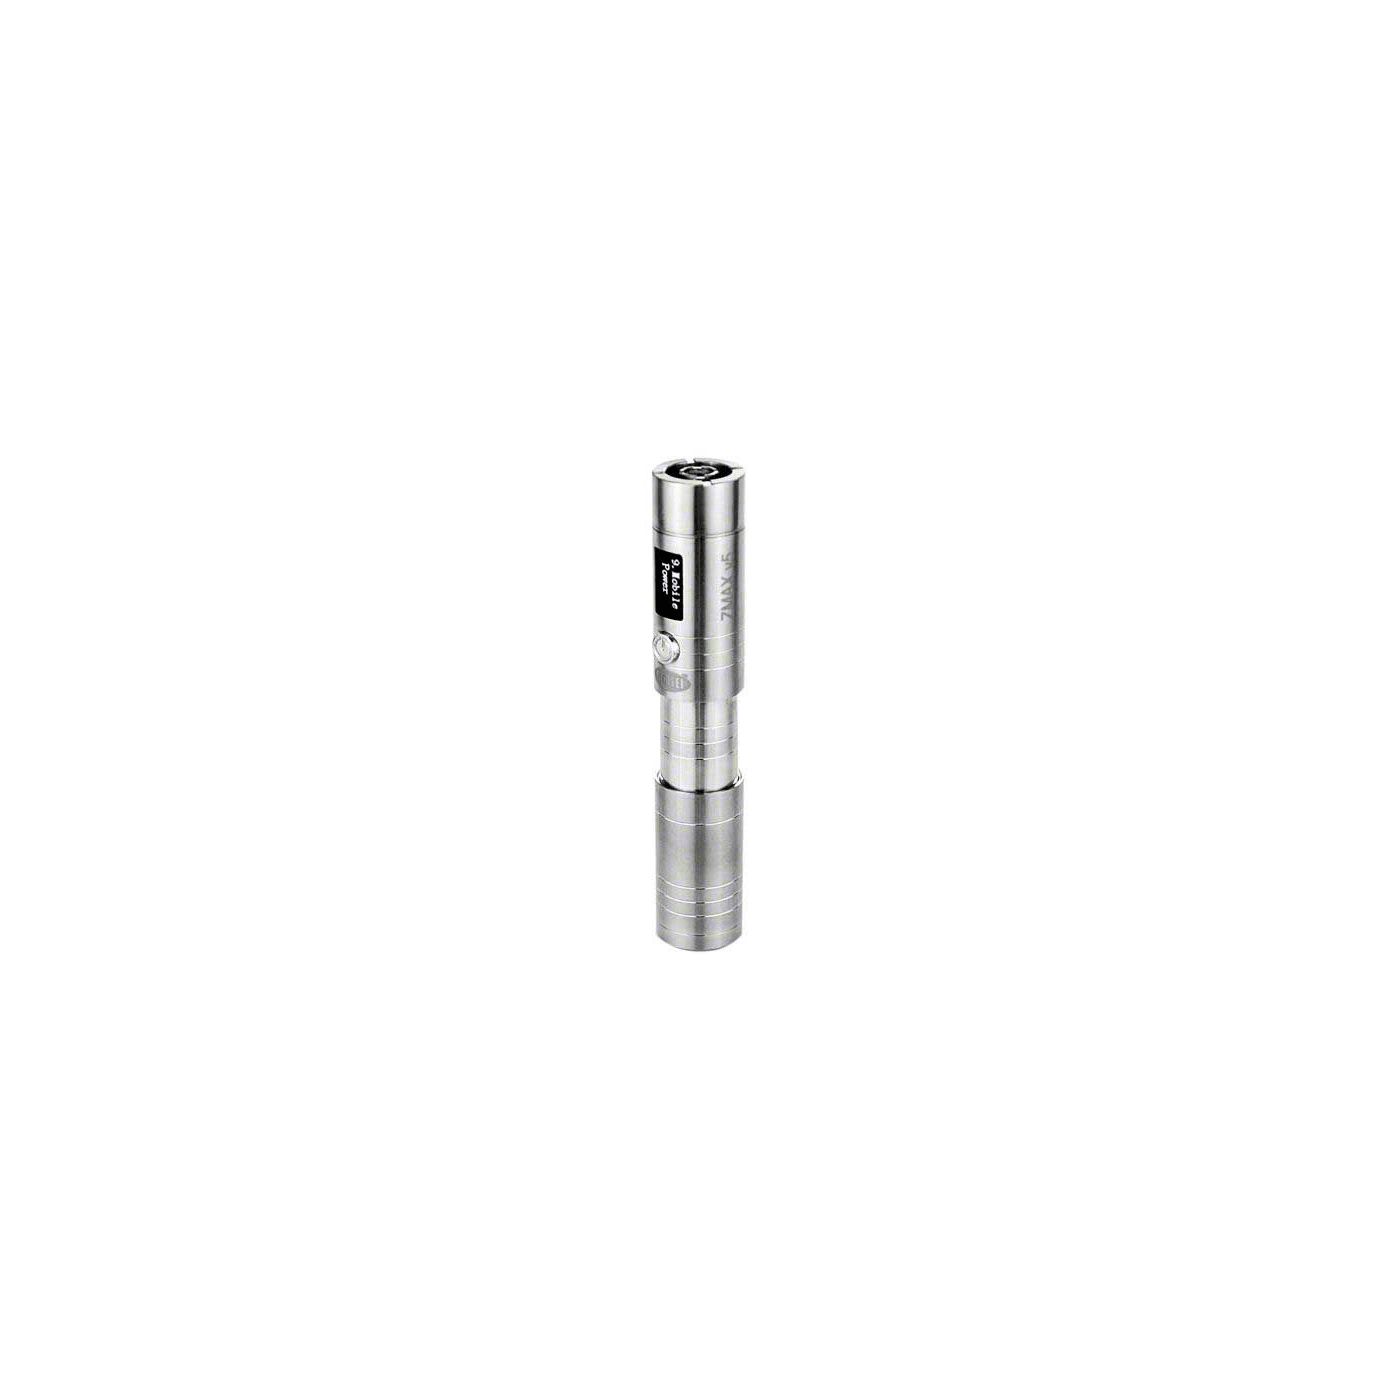 Sigelei Zmax V5 Mod - Stainless SIde